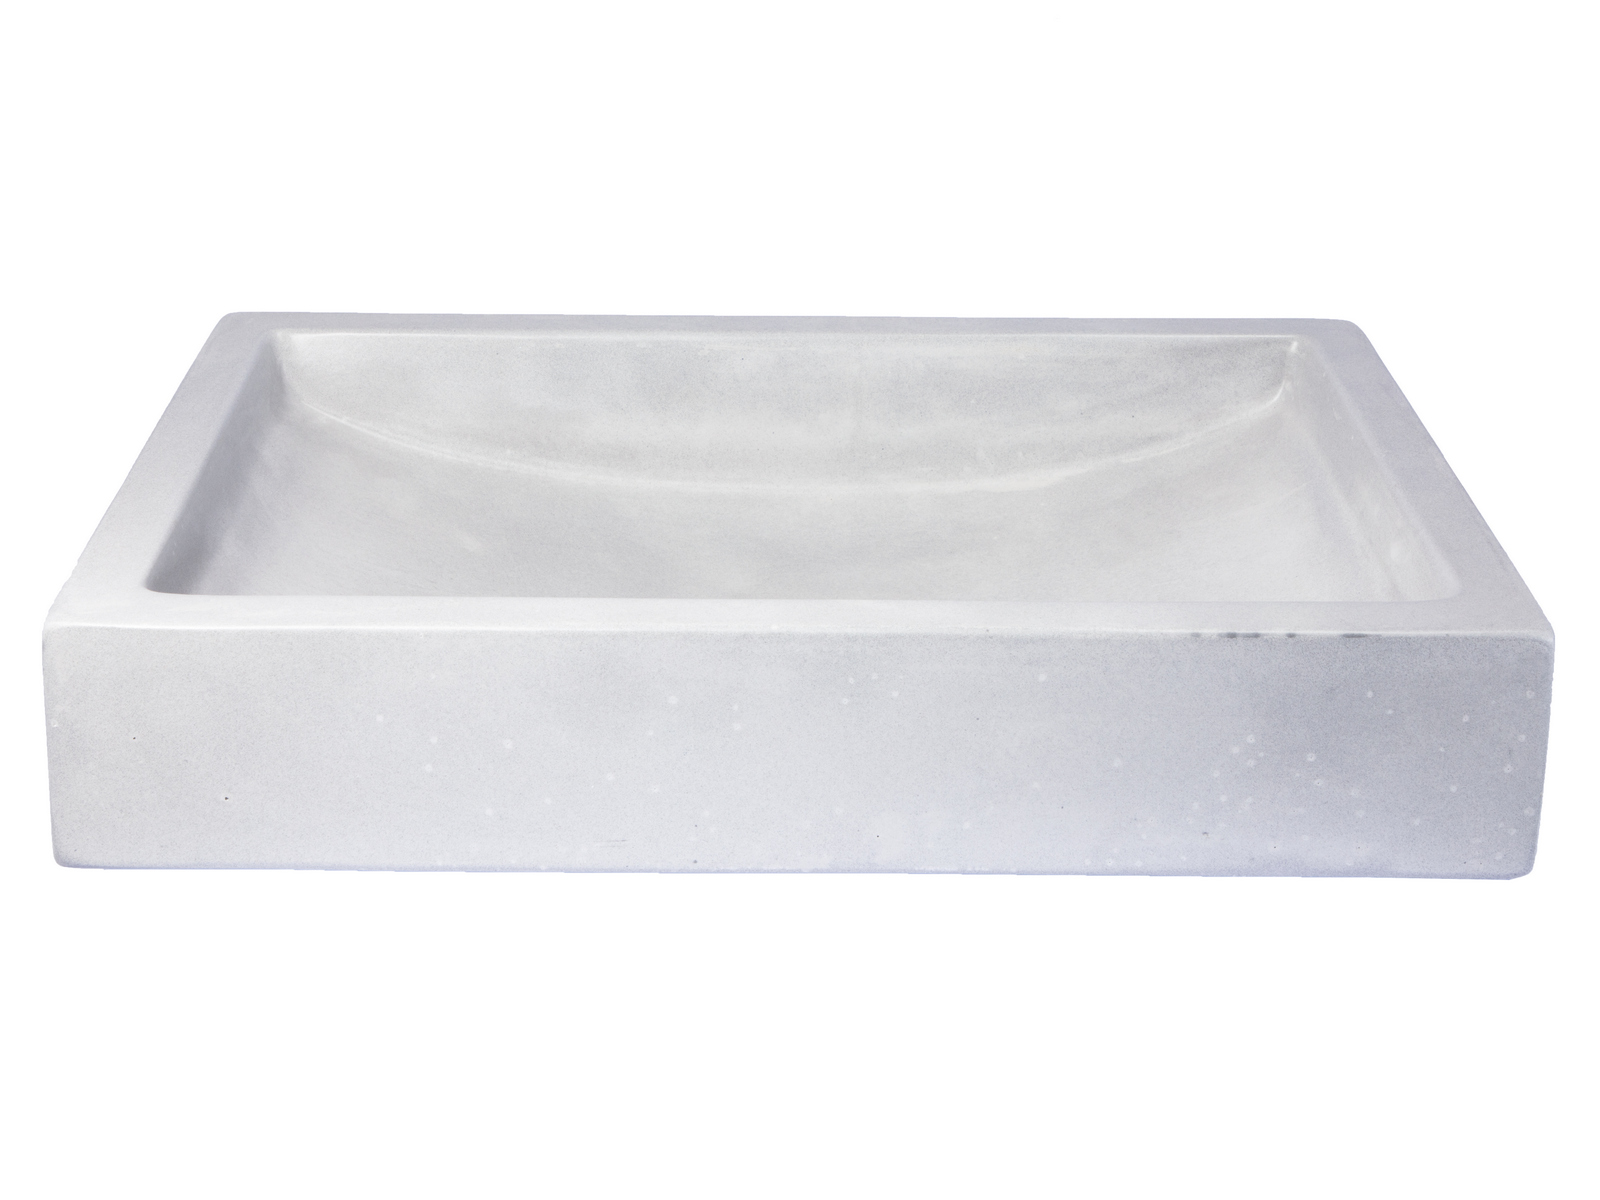 -22-in. Shallow Wave Concrete Rectangular Vessel Sink - Light Gray